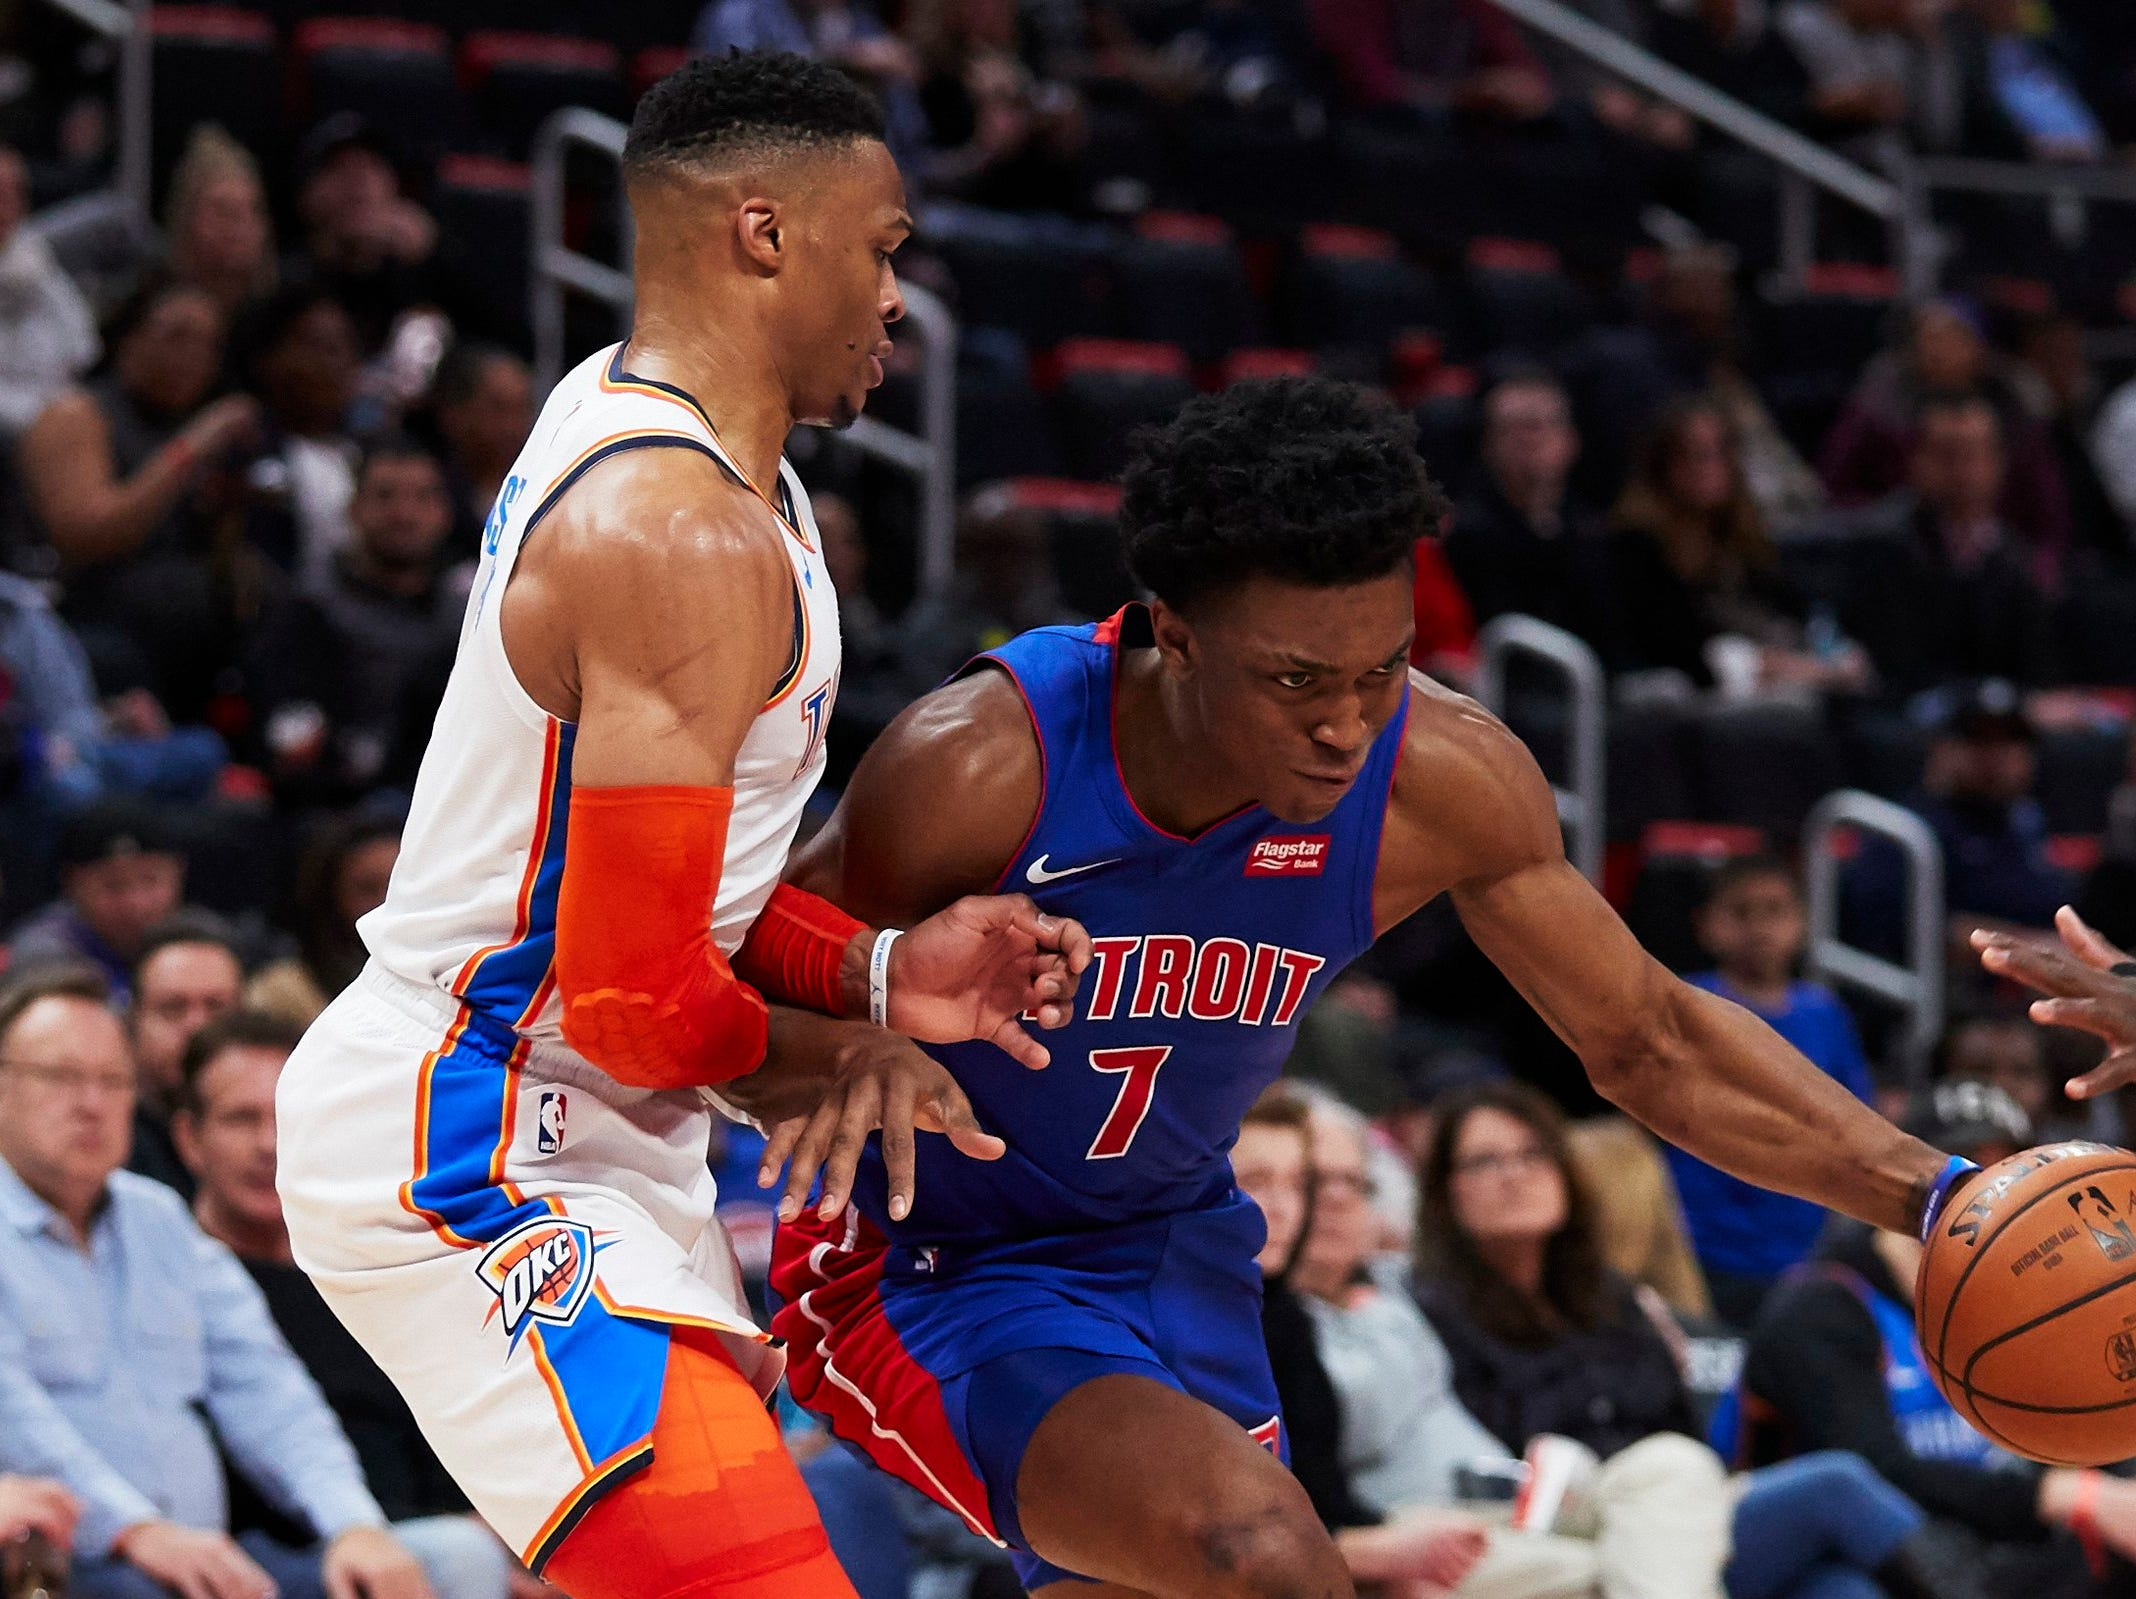 Detroit Pistons forward Stanley Johnson (7) dribbles defended by Oklahoma City Thunder guard Russell Westbrook (0) in the second half at Little Caesars Arena.